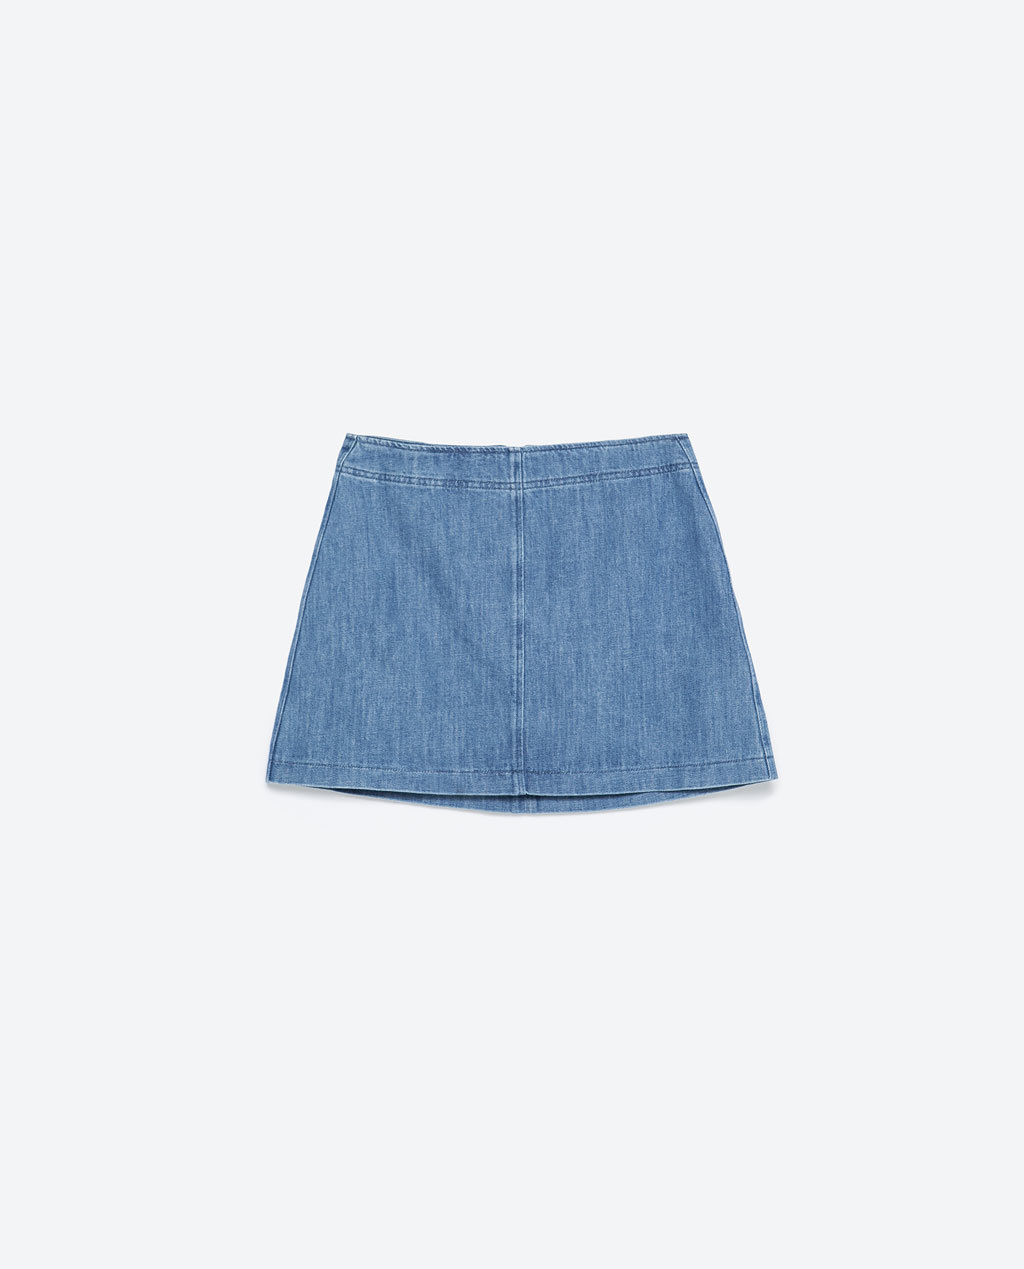 Denim Skirt - length: mini; pattern: plain; waist: high rise; predominant colour: denim; occasions: casual, holiday; style: a-line; fibres: cotton - stretch; texture group: denim; fit: straight cut; pattern type: fabric; season: s/s 2015; wardrobe: basic